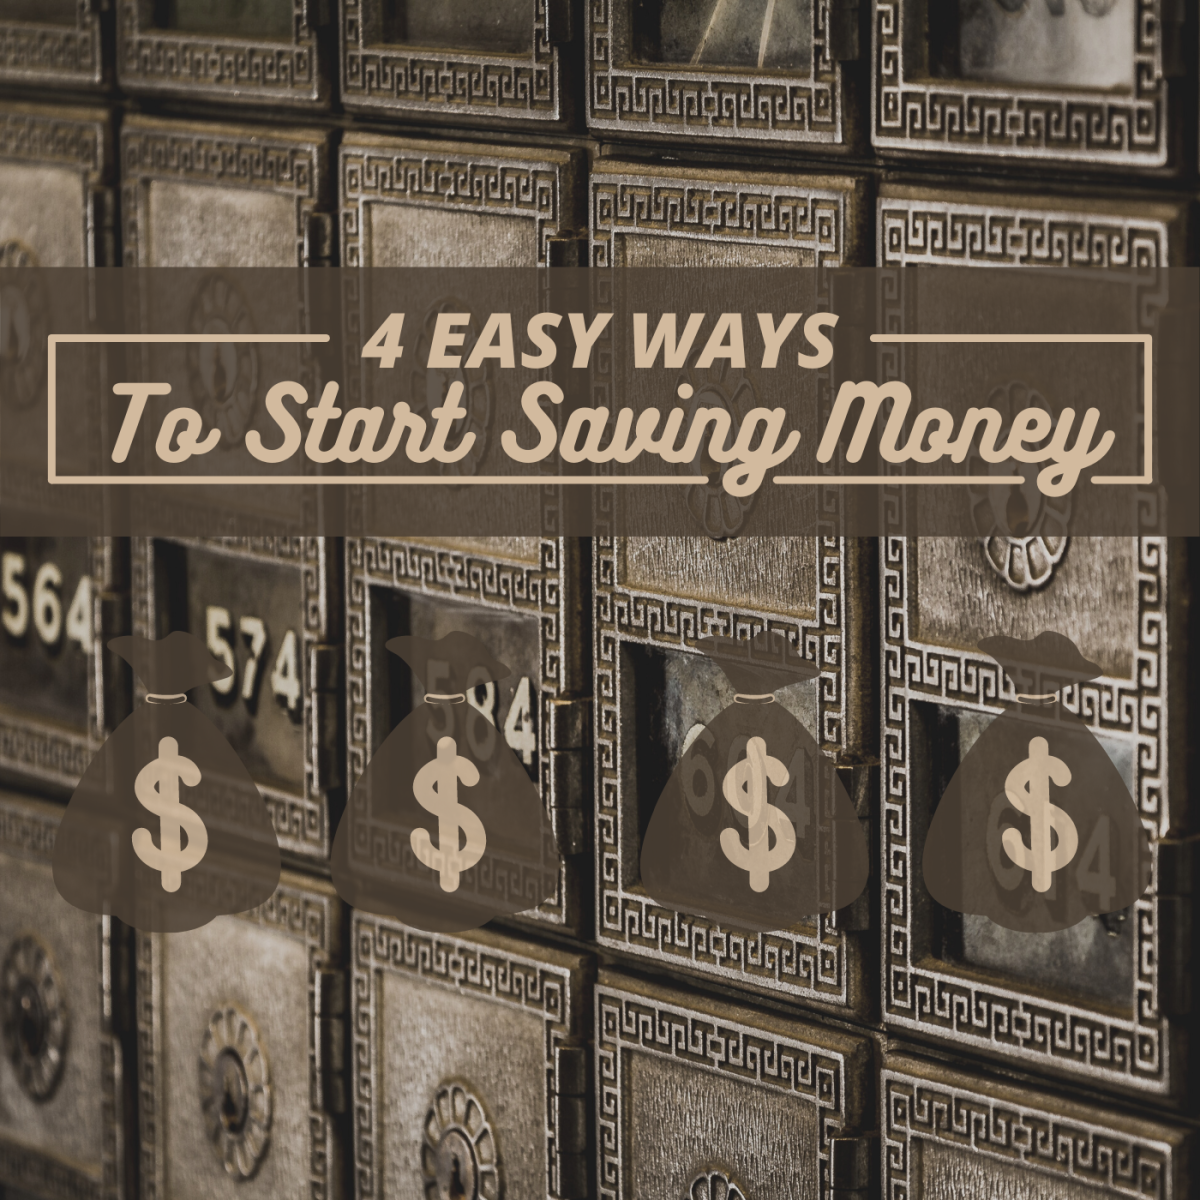 Want to save money? Make small changes over time can help.